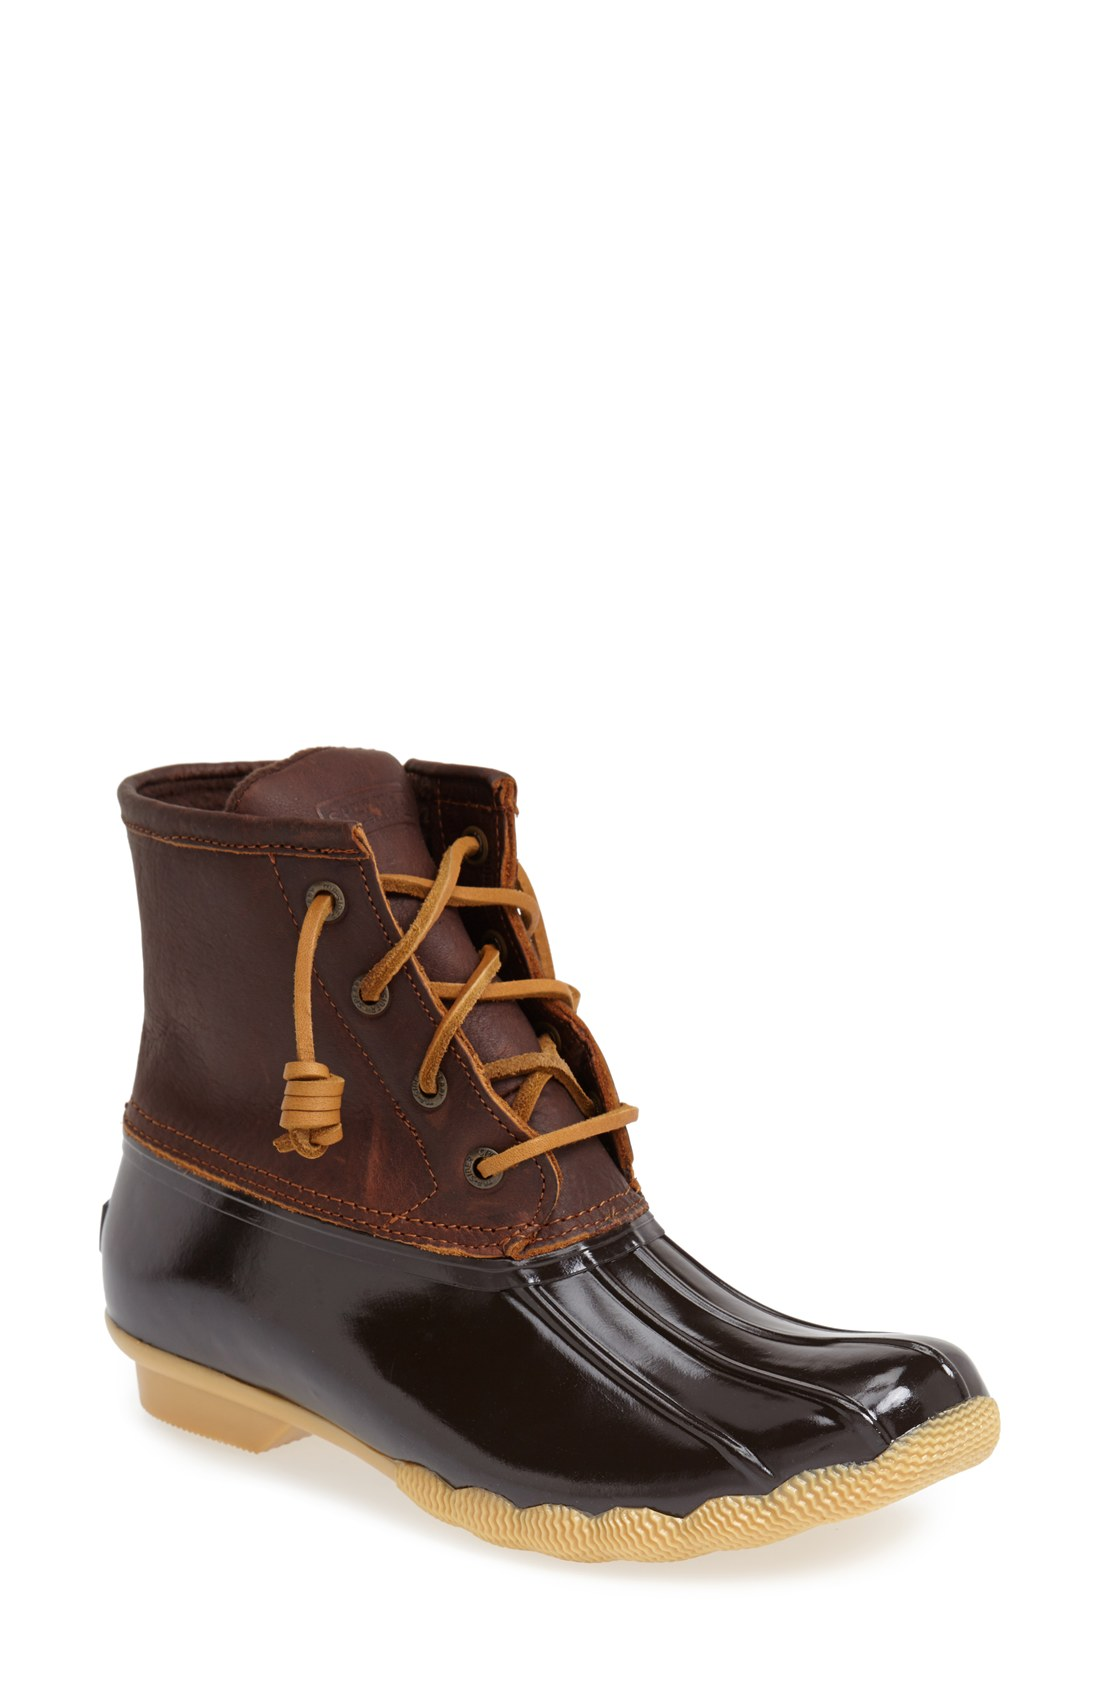 Leather Ankle Boots Womens qJVQX8Z7